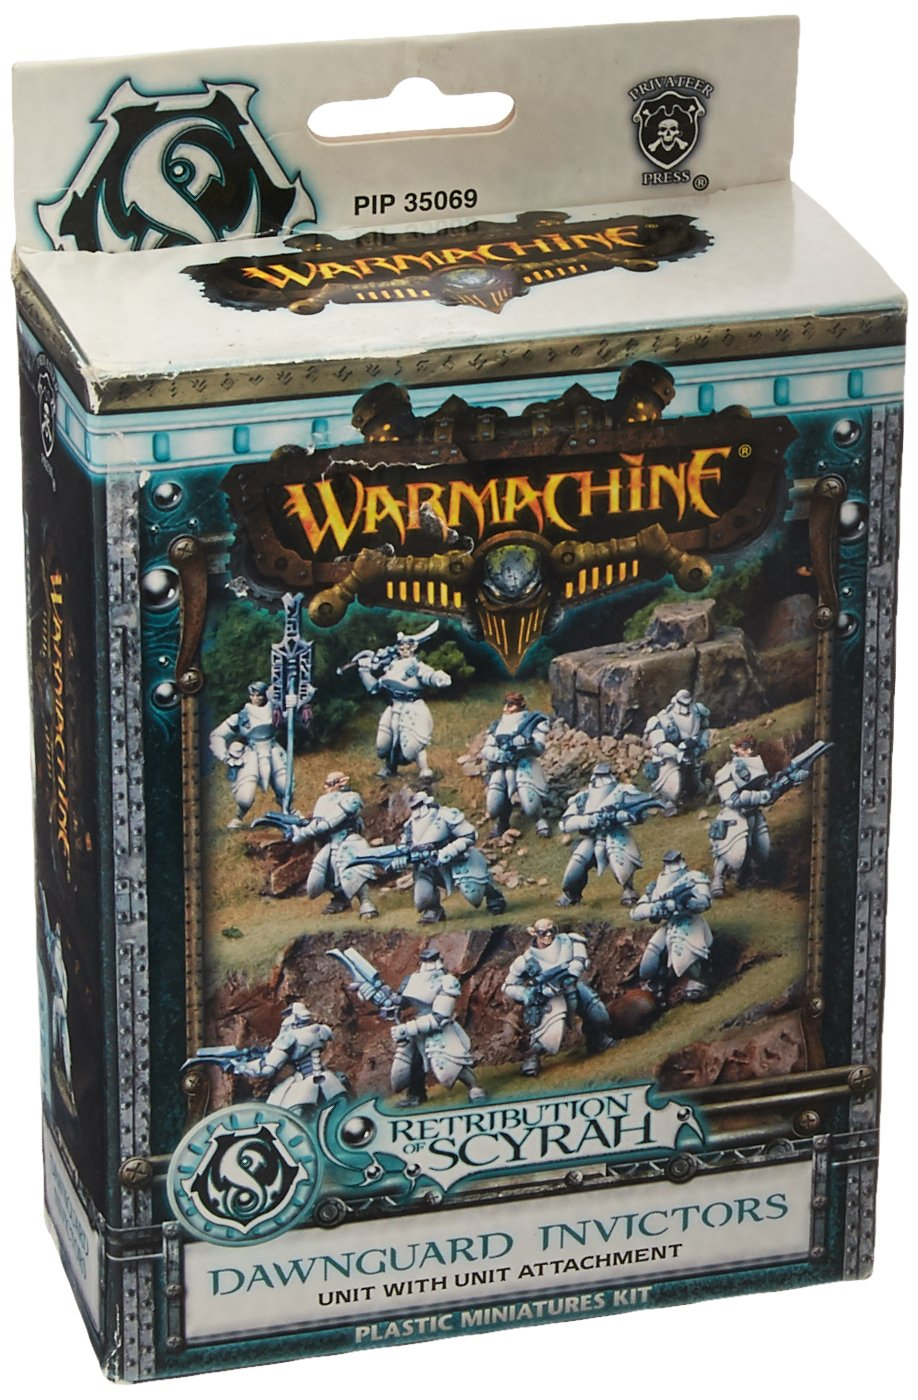 CDM product Privateer Press PIP35069 War Machine Retribution Dawnguard Invictors Kit big image